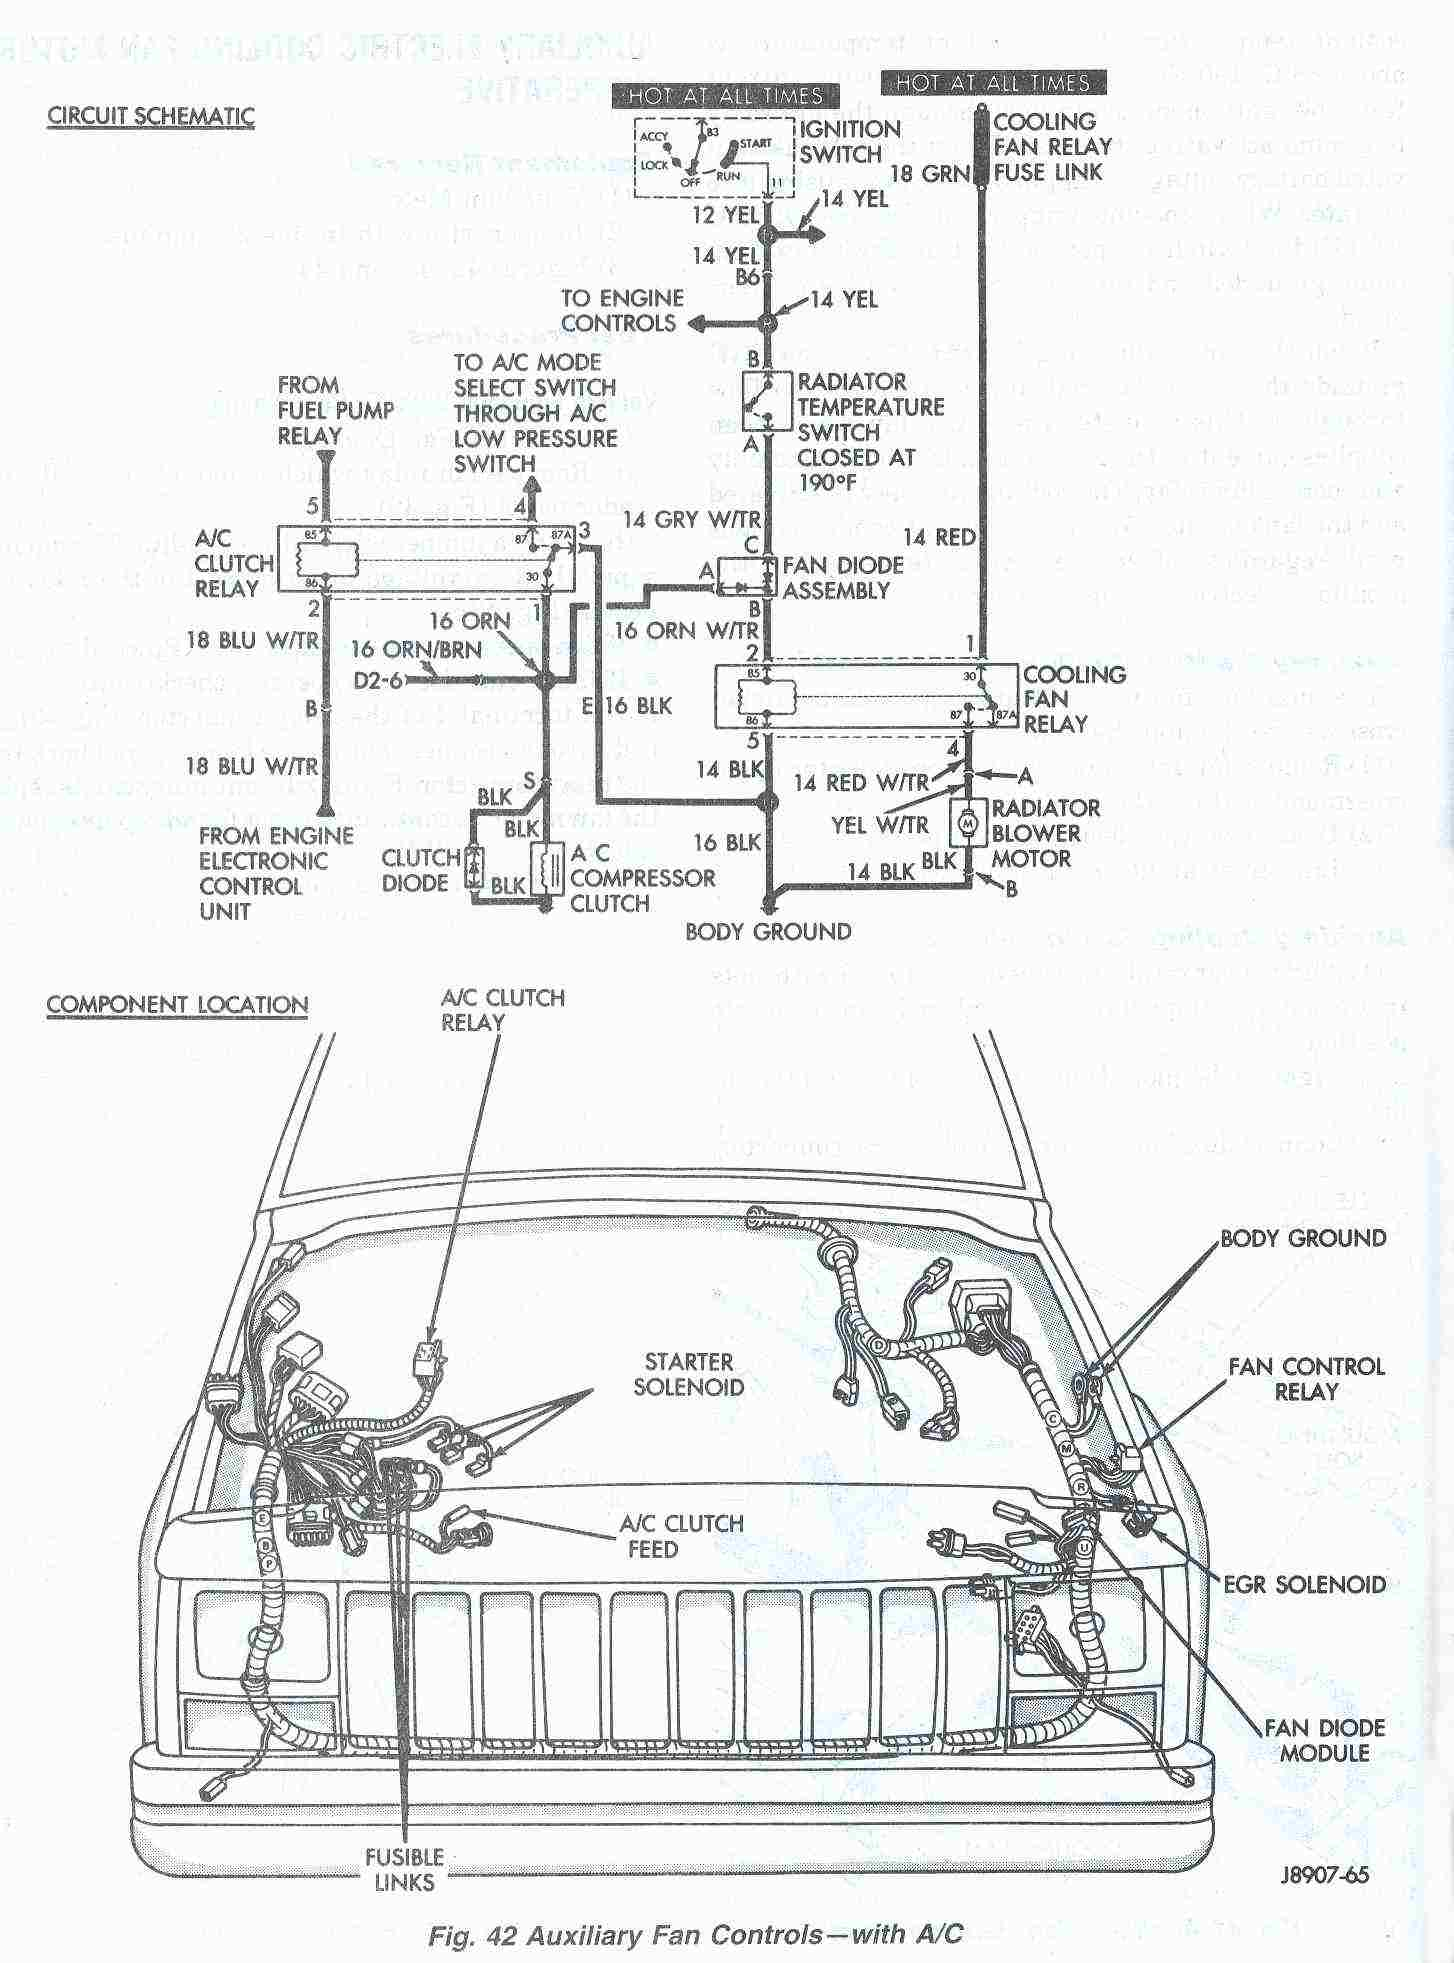 Living Purepower Switch Wiring Diagram Library 1995 Jeep Wrangler Ignition Cherokee Fan Control Enthusiast Rh Rasalibre Co 1994